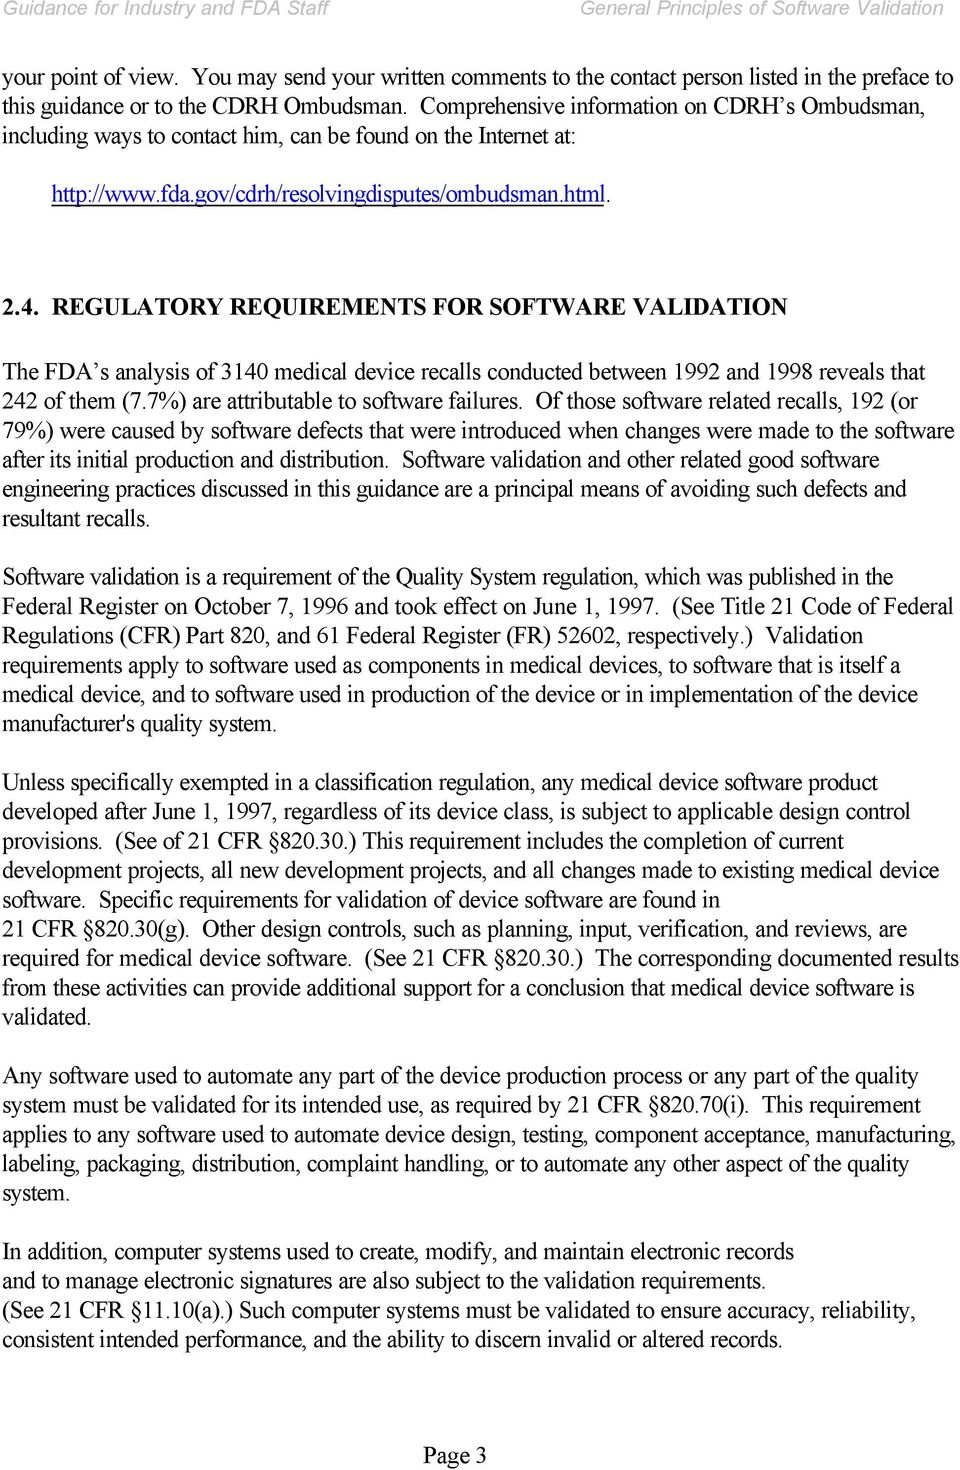 REGULATORY REQUIREMENTS FOR SOFTWARE VALIDATION The FDA s analysis of 3140 medical device recalls conducted between 1992 and 1998 reveals that 242 of them (7.7%) are attributable to software failures.